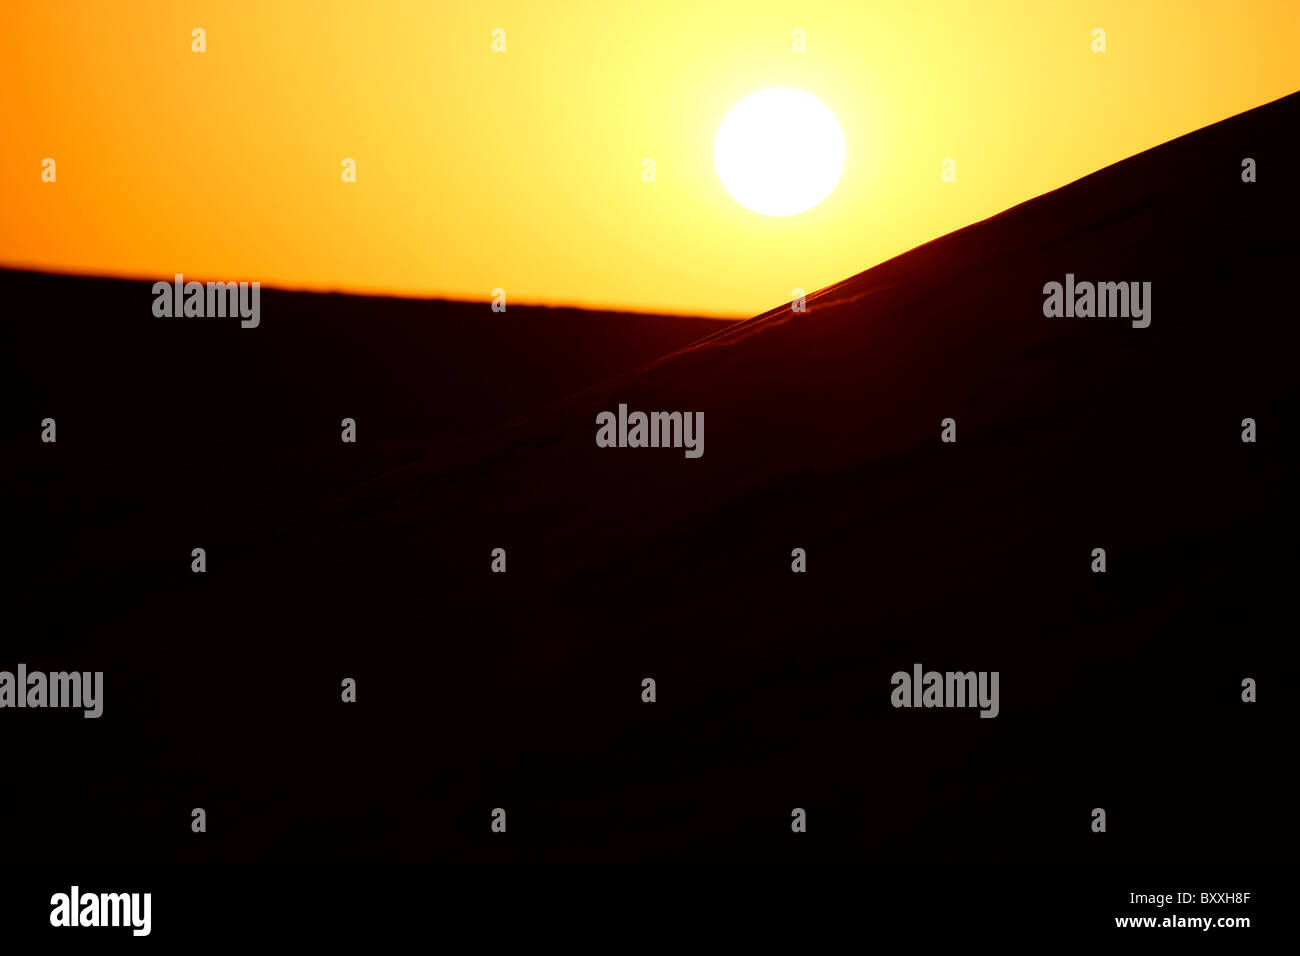 Sunrise in the deserts of Rajasthan - Stock Image